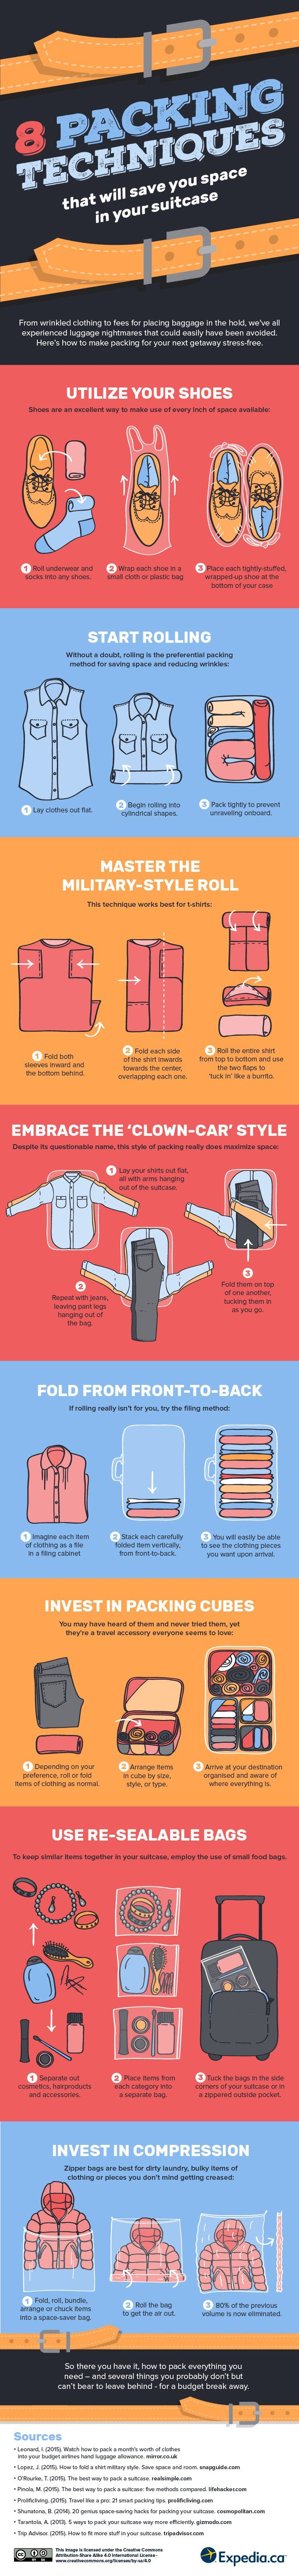 8 Packing Techniques that Will Save You Space in Your Suitcase